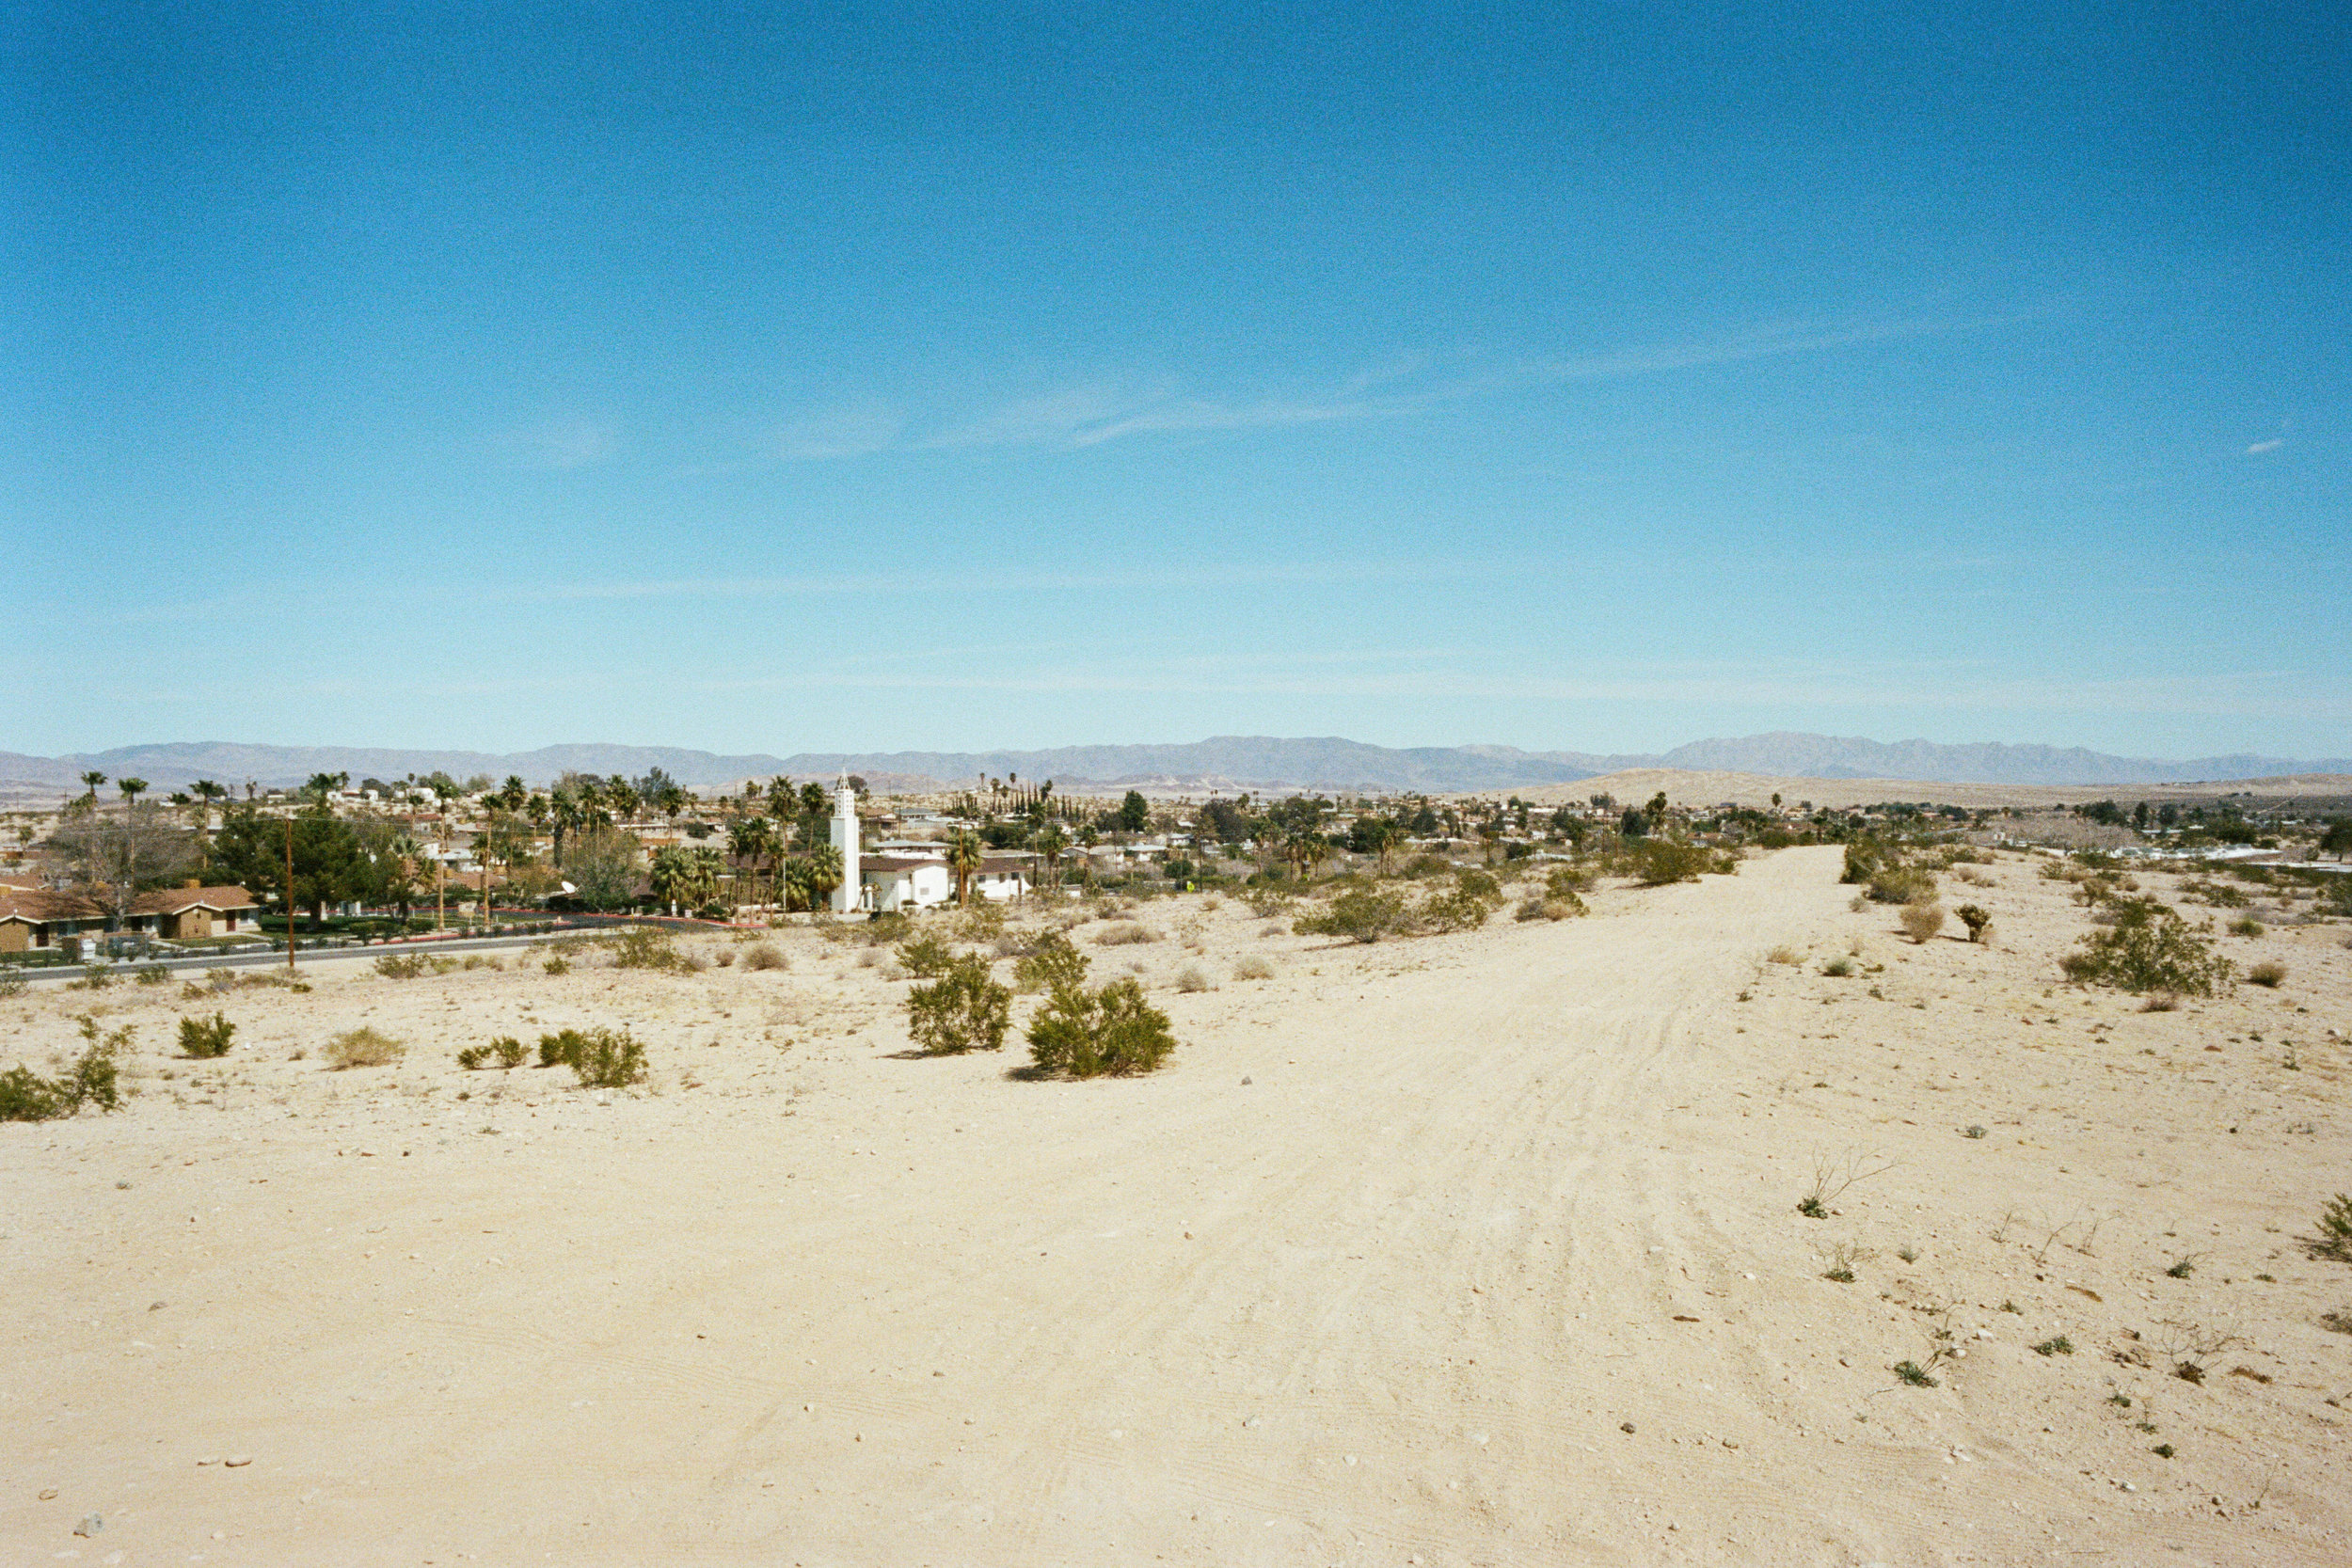 Up the hill from Highway 62 and looking east, CA desert, 2018 - 35mm Portra